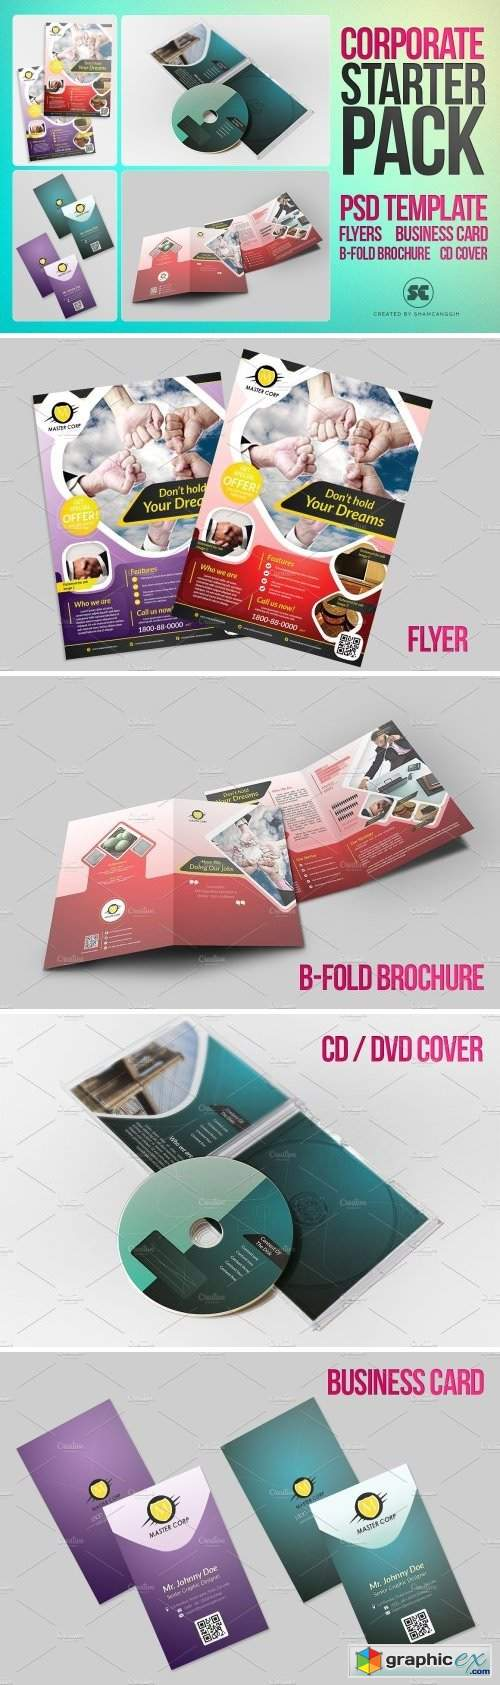 Corporate Starter Pack Psd Template 1590807